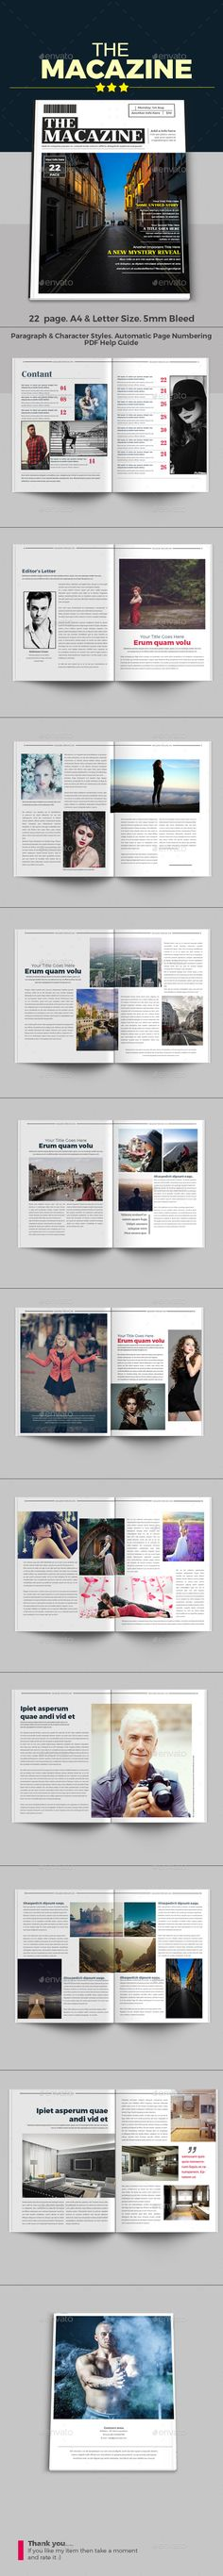 The Macazine  — InDesign Template #fashion #professional • Download ➝ https://graphicriver.net/item/the-macazine/18190111?ref=pxcr